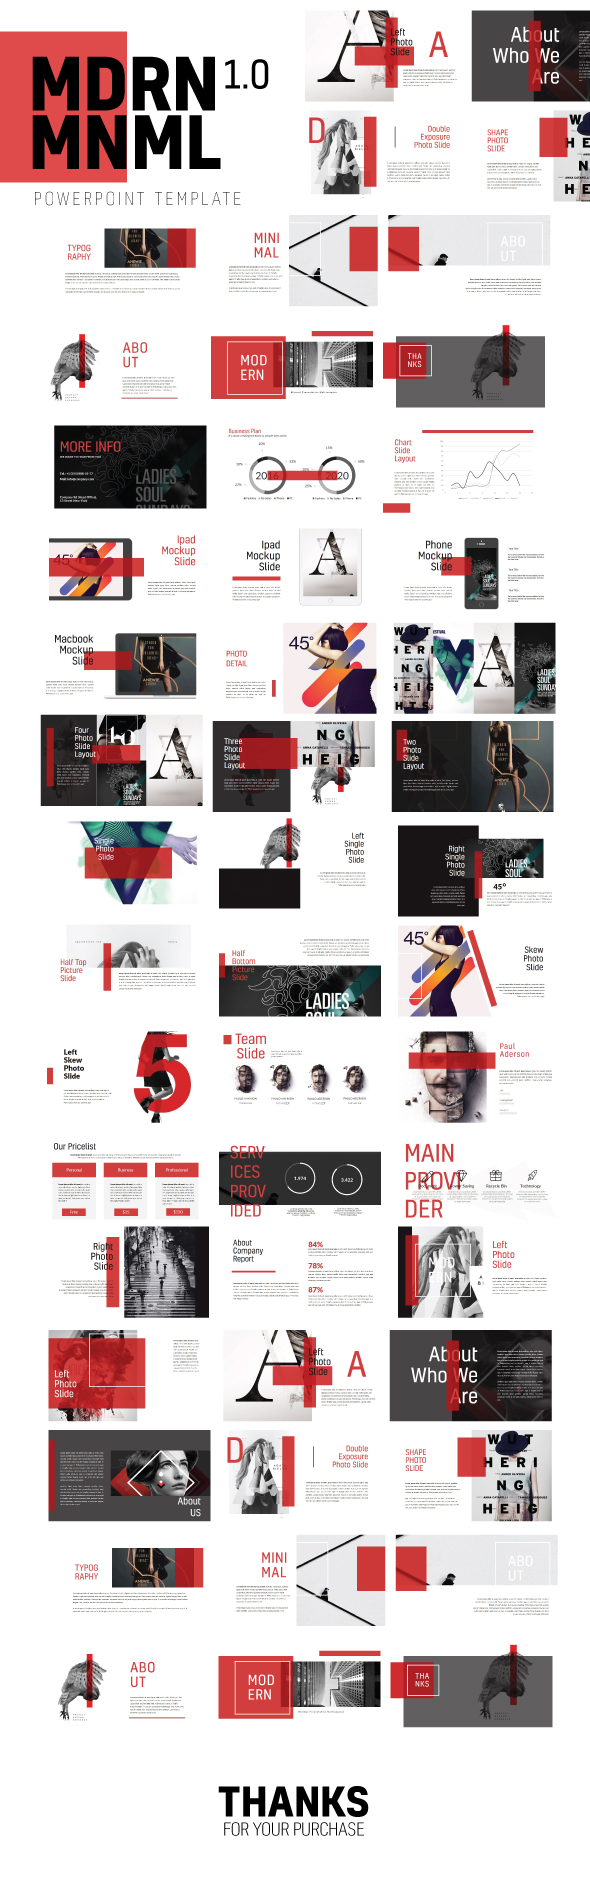 Mdrn Mnml Powerpoint Template Multipurpose by H_M | GraphicRiver